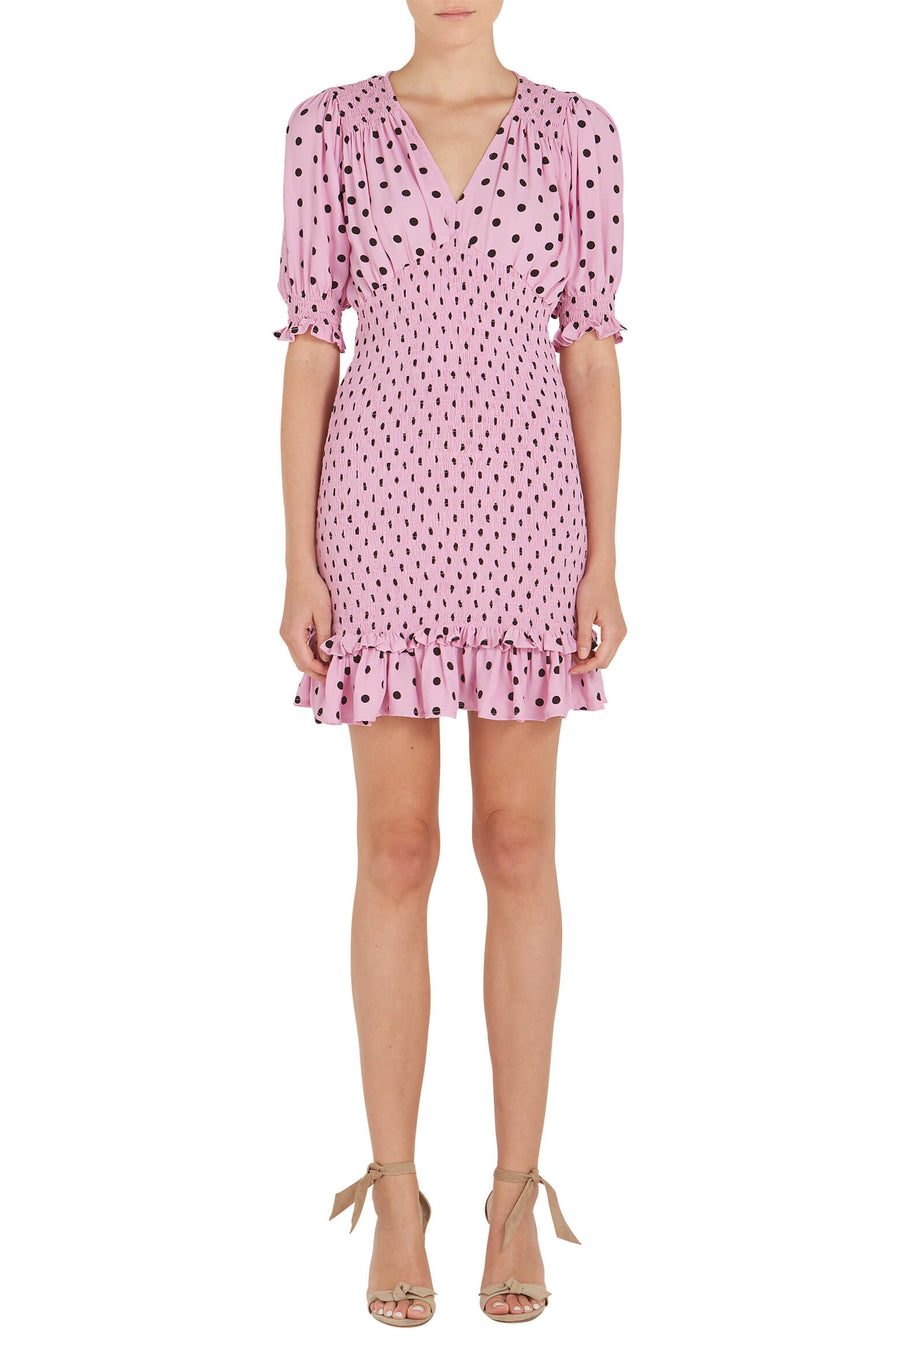 Faithfull The Brand Margherita Mini Dress from The New Trend